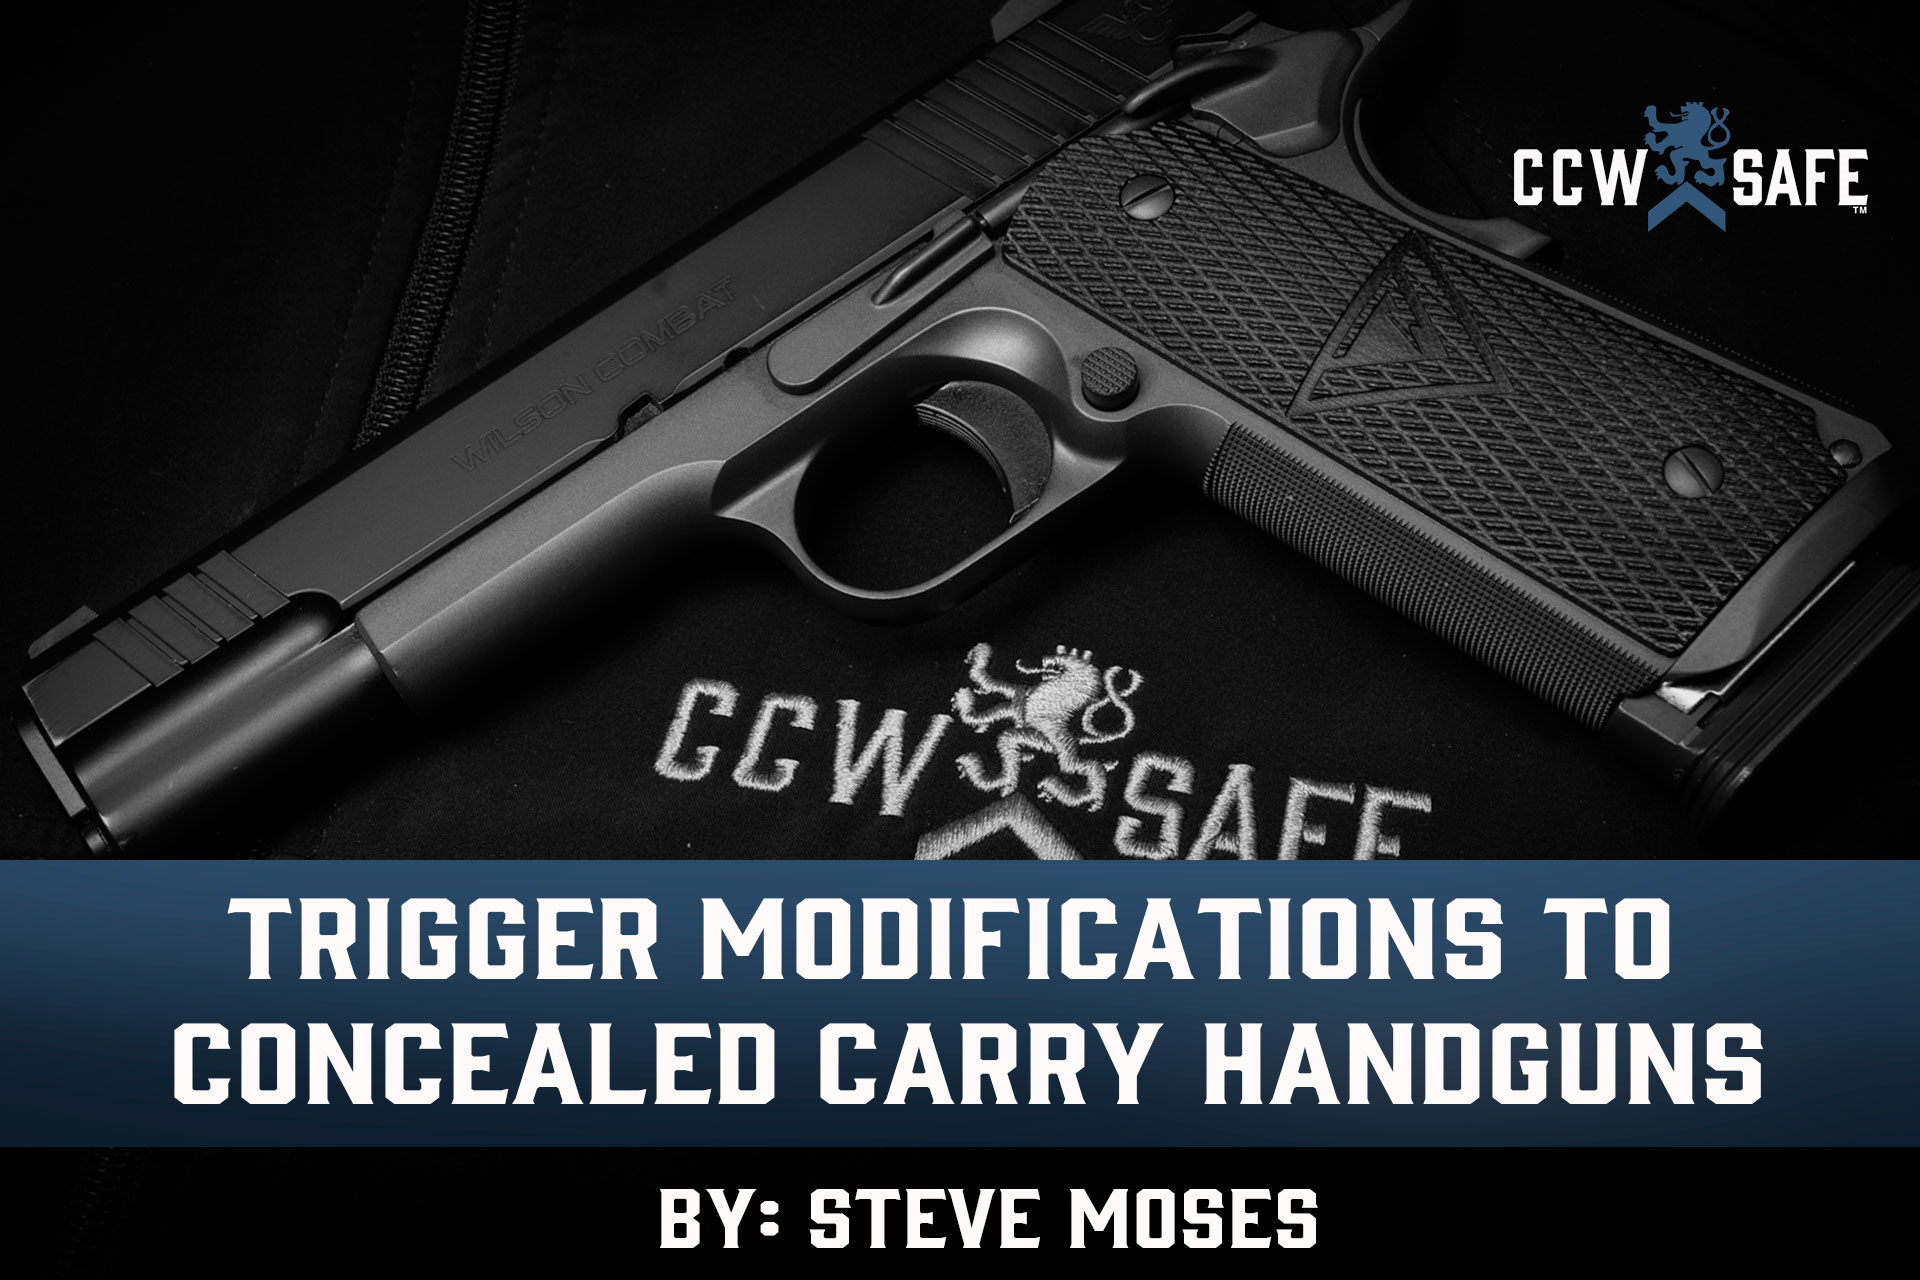 TRIGGER MODIFICATIONS TO CONCEALED CARRY HANDGUNS